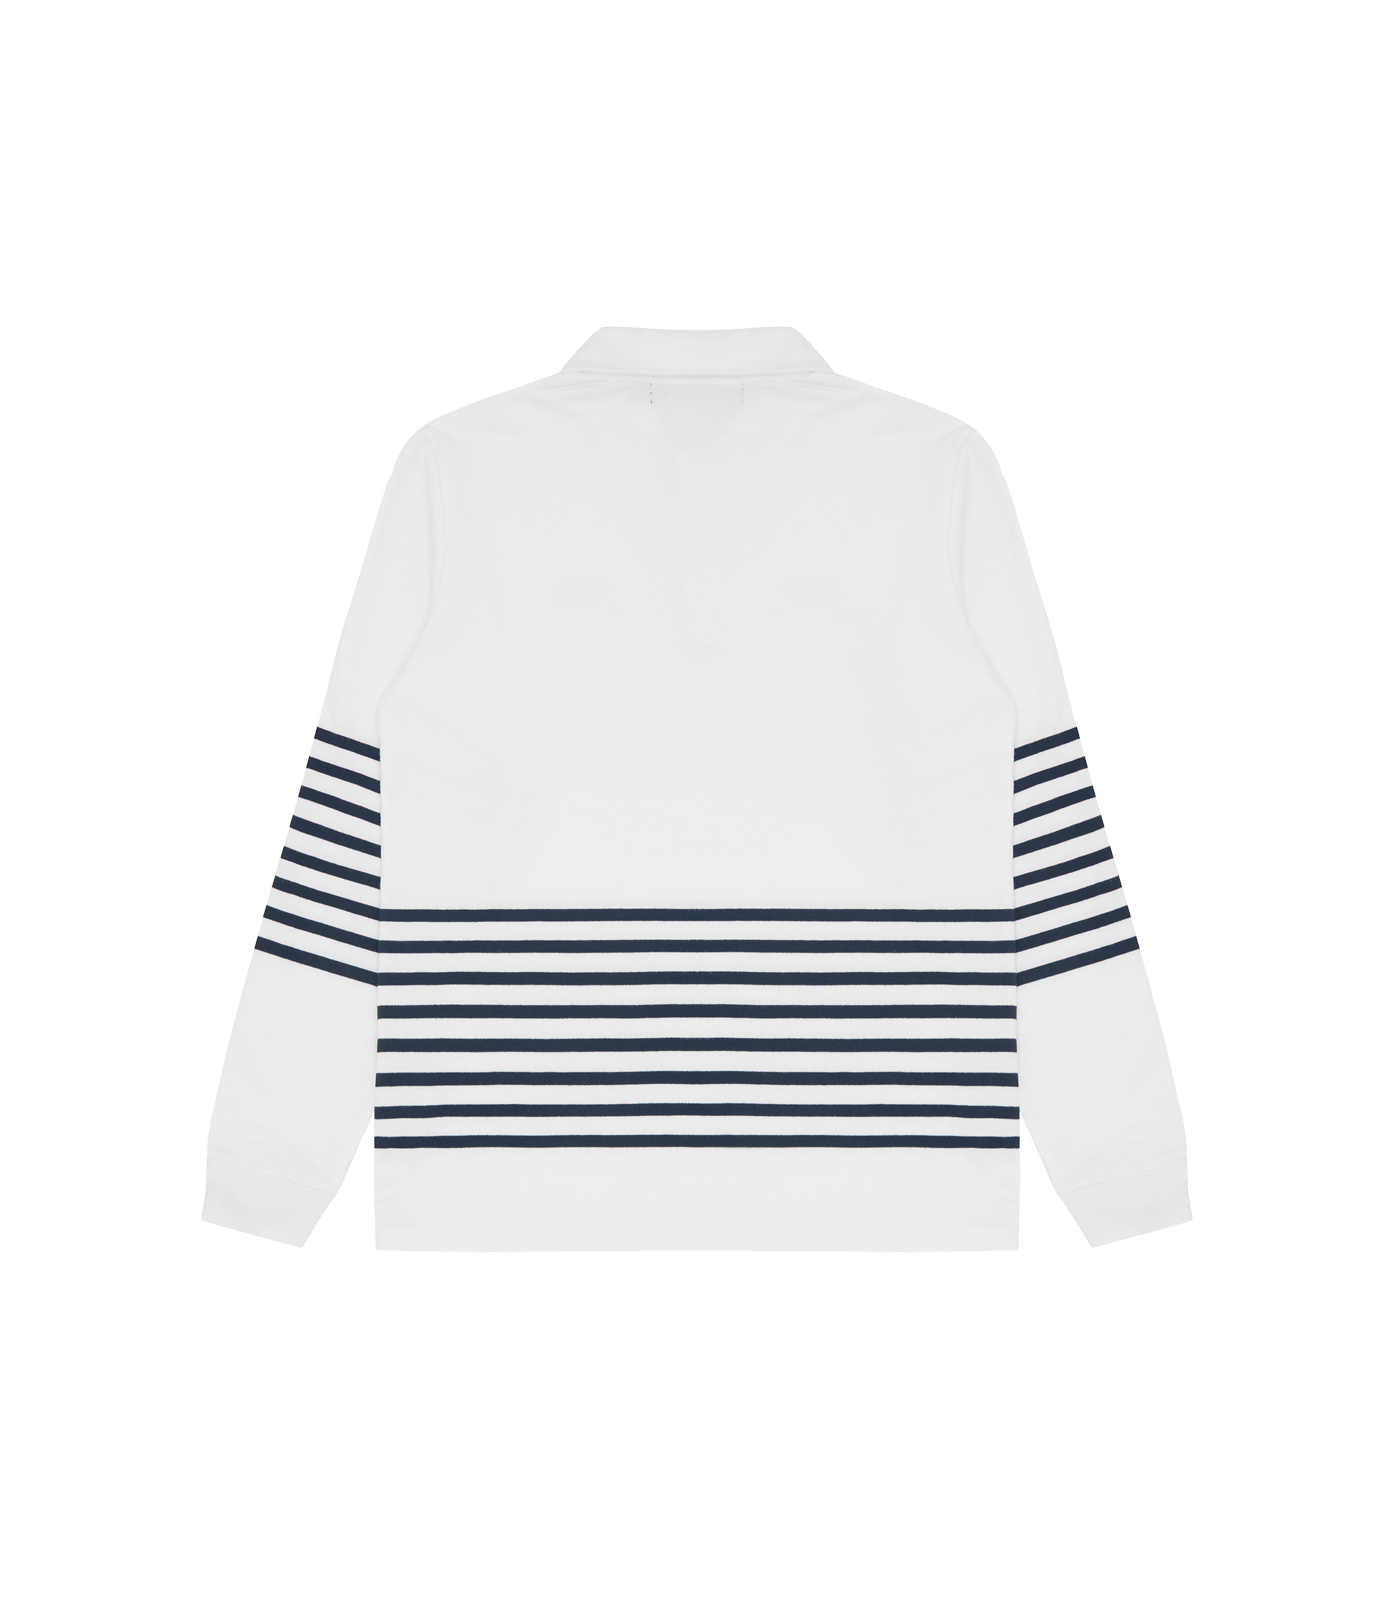 STRIPE KNIT RUGBY SHIRT